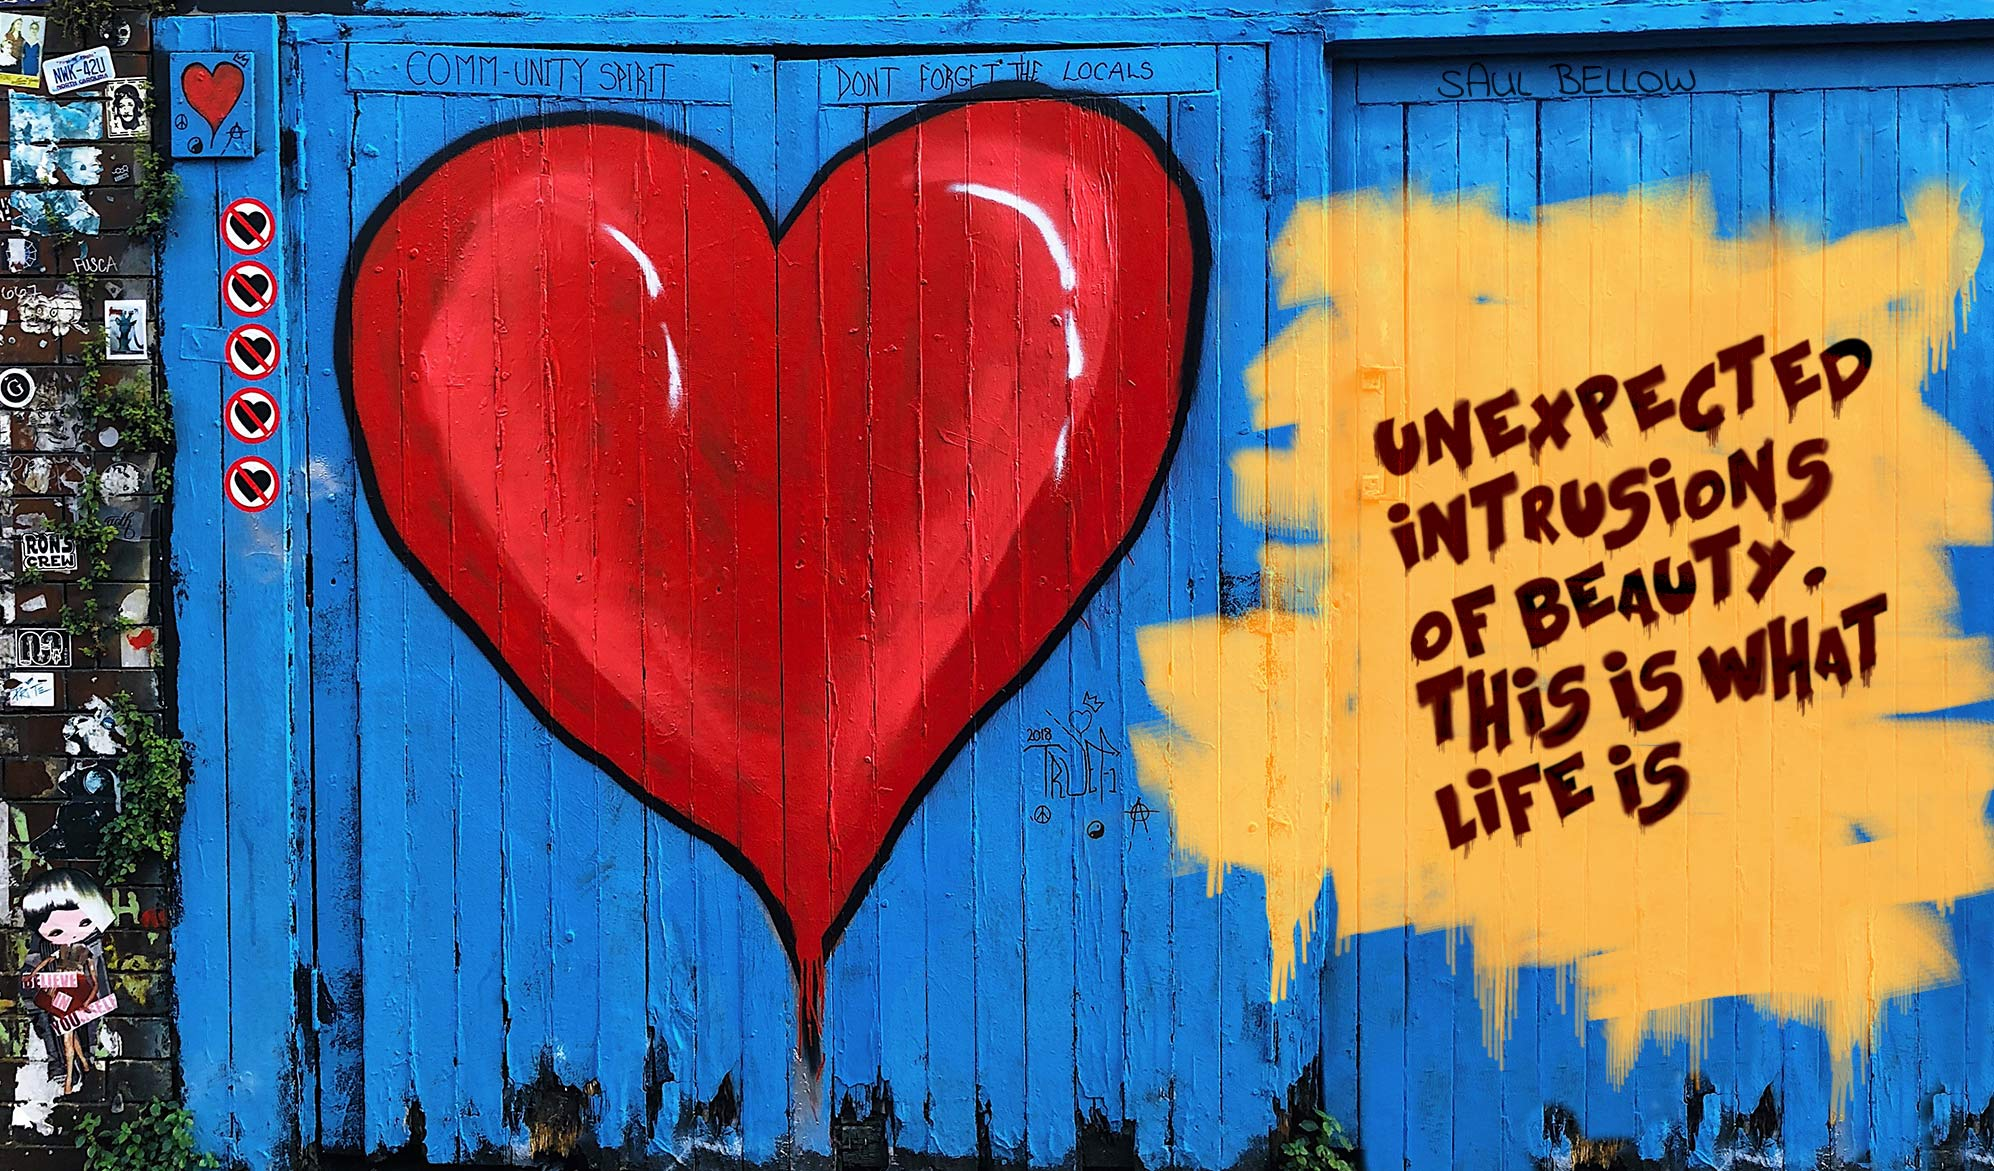 Daily inspirational quote image: a blue wooden fence with a heart and some text spray-painted on it